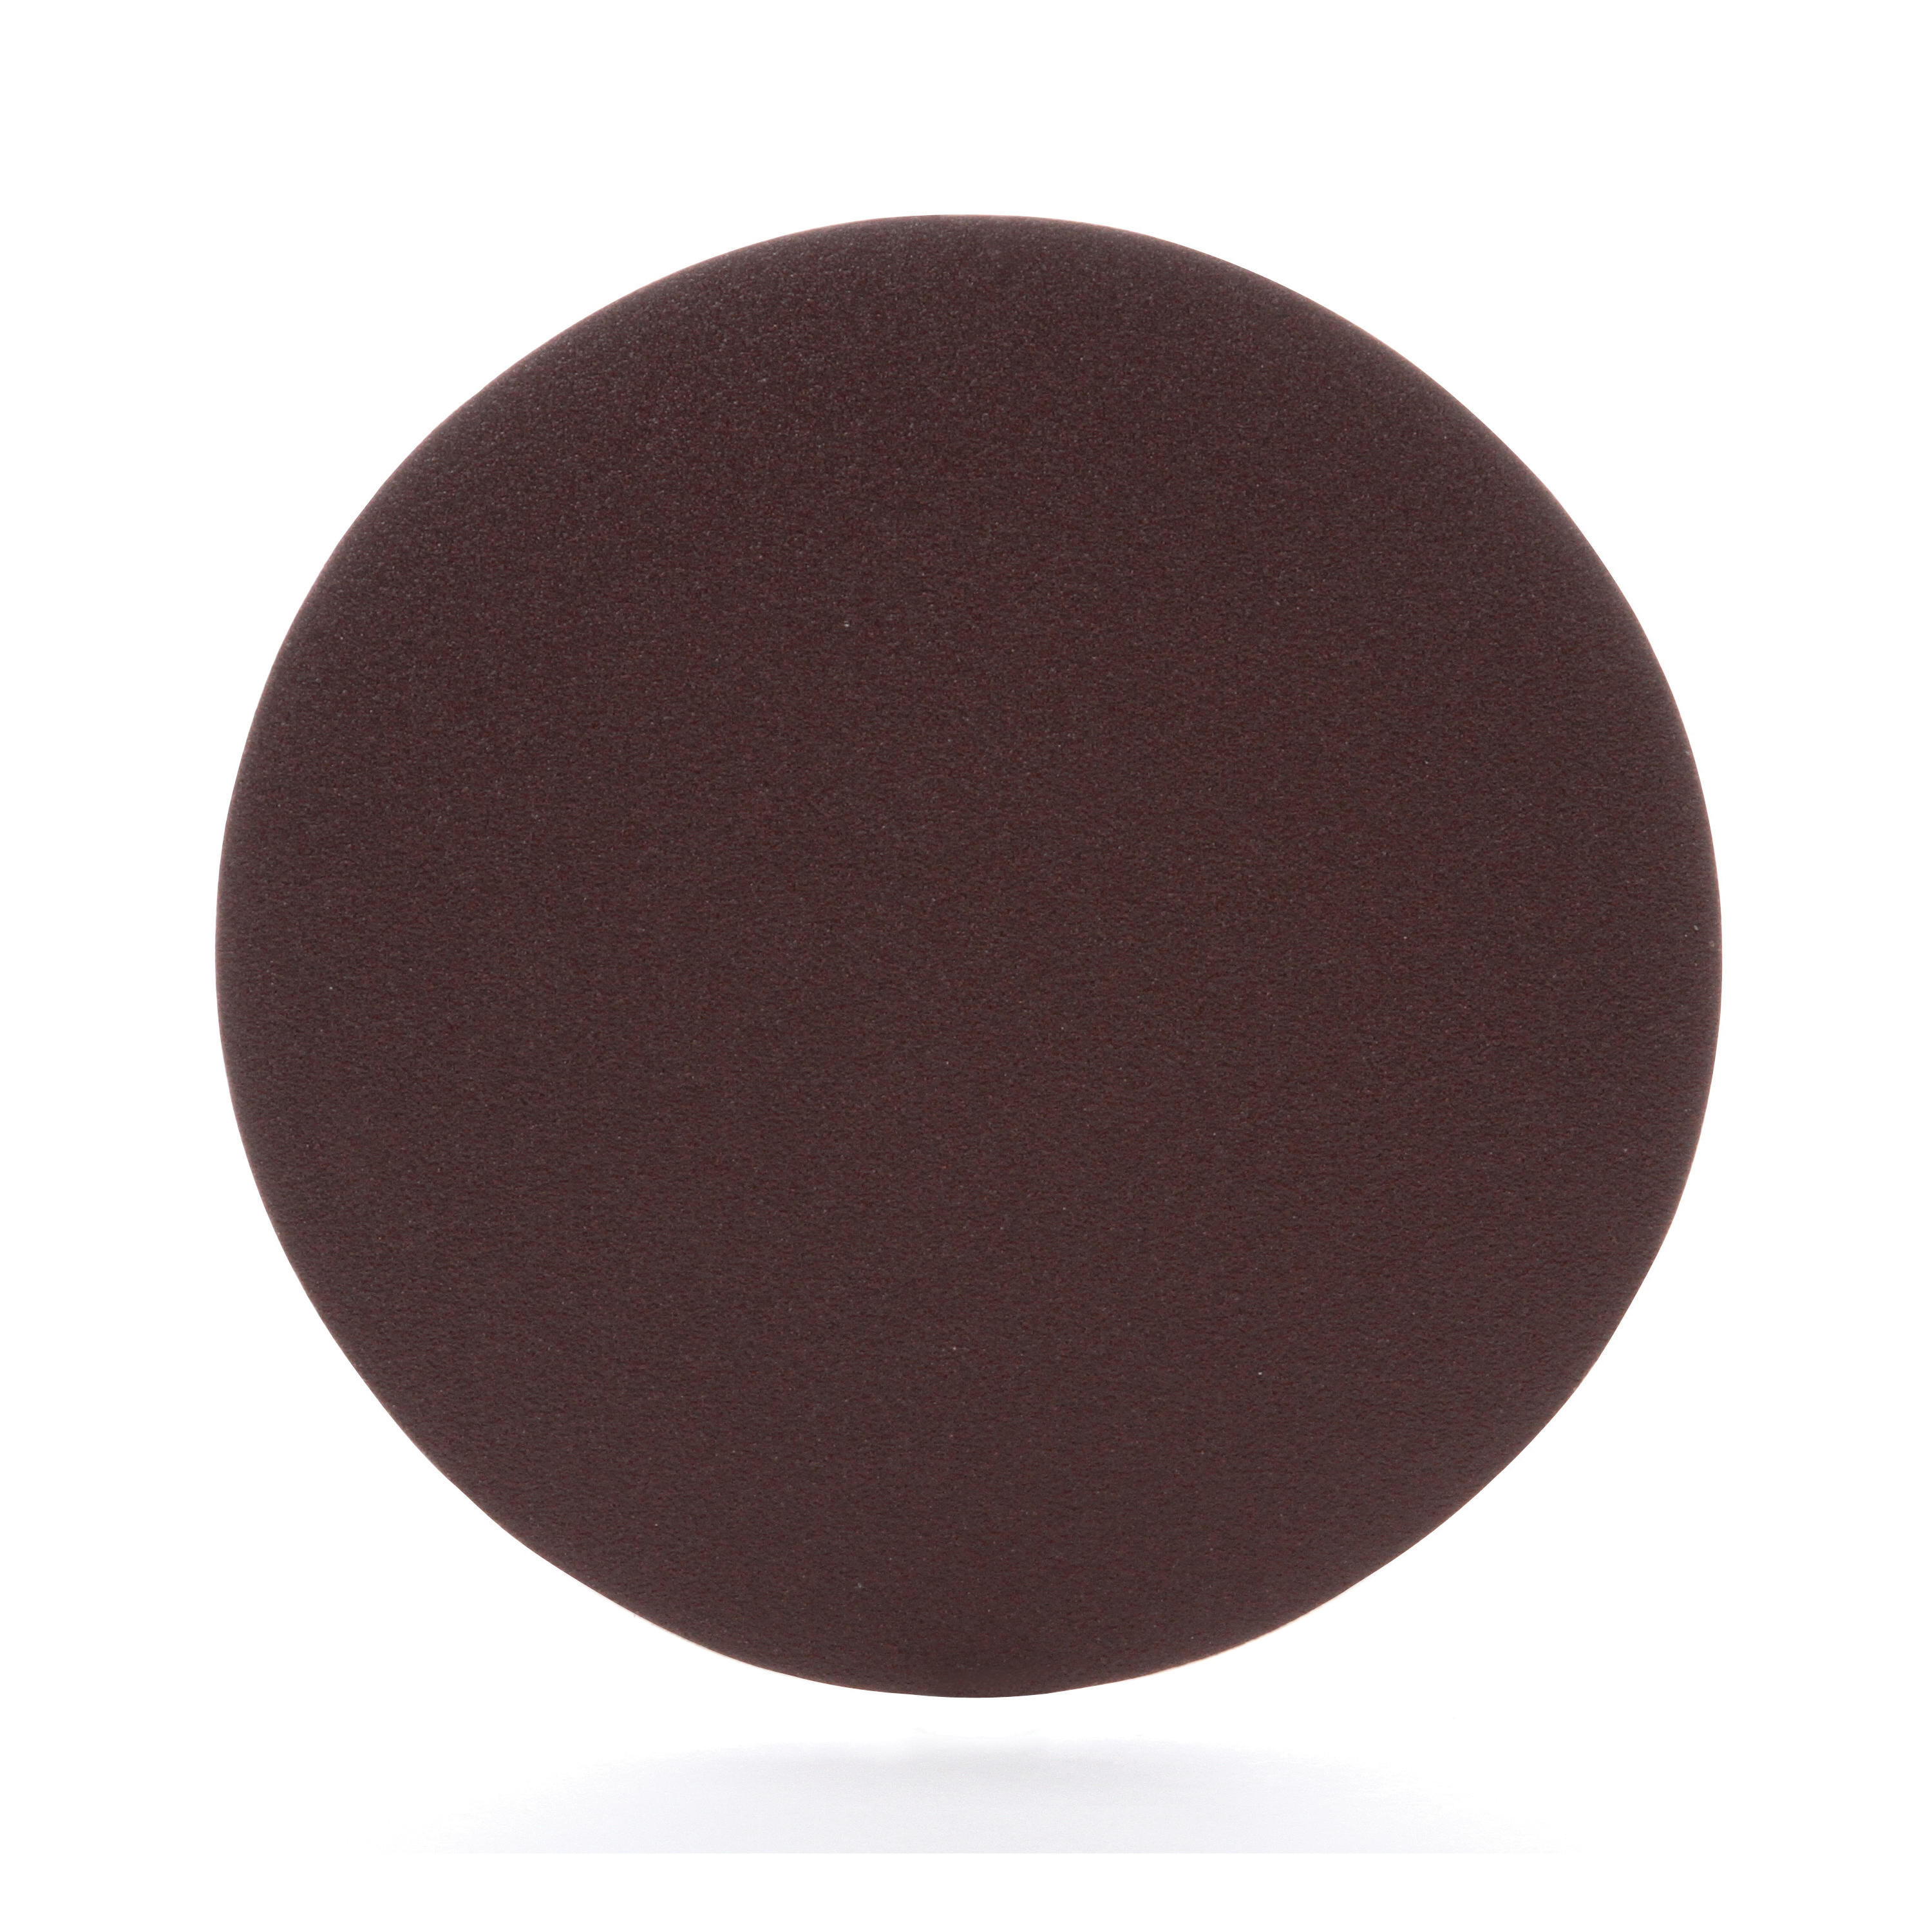 Stikit™ 051111-50453 General Purpose PSA Open Coated Abrasive Disc With Liner, 5 in Dia, P150 Grit, Very Fine Grade, Aluminum Oxide Abrasive, Cloth Backing